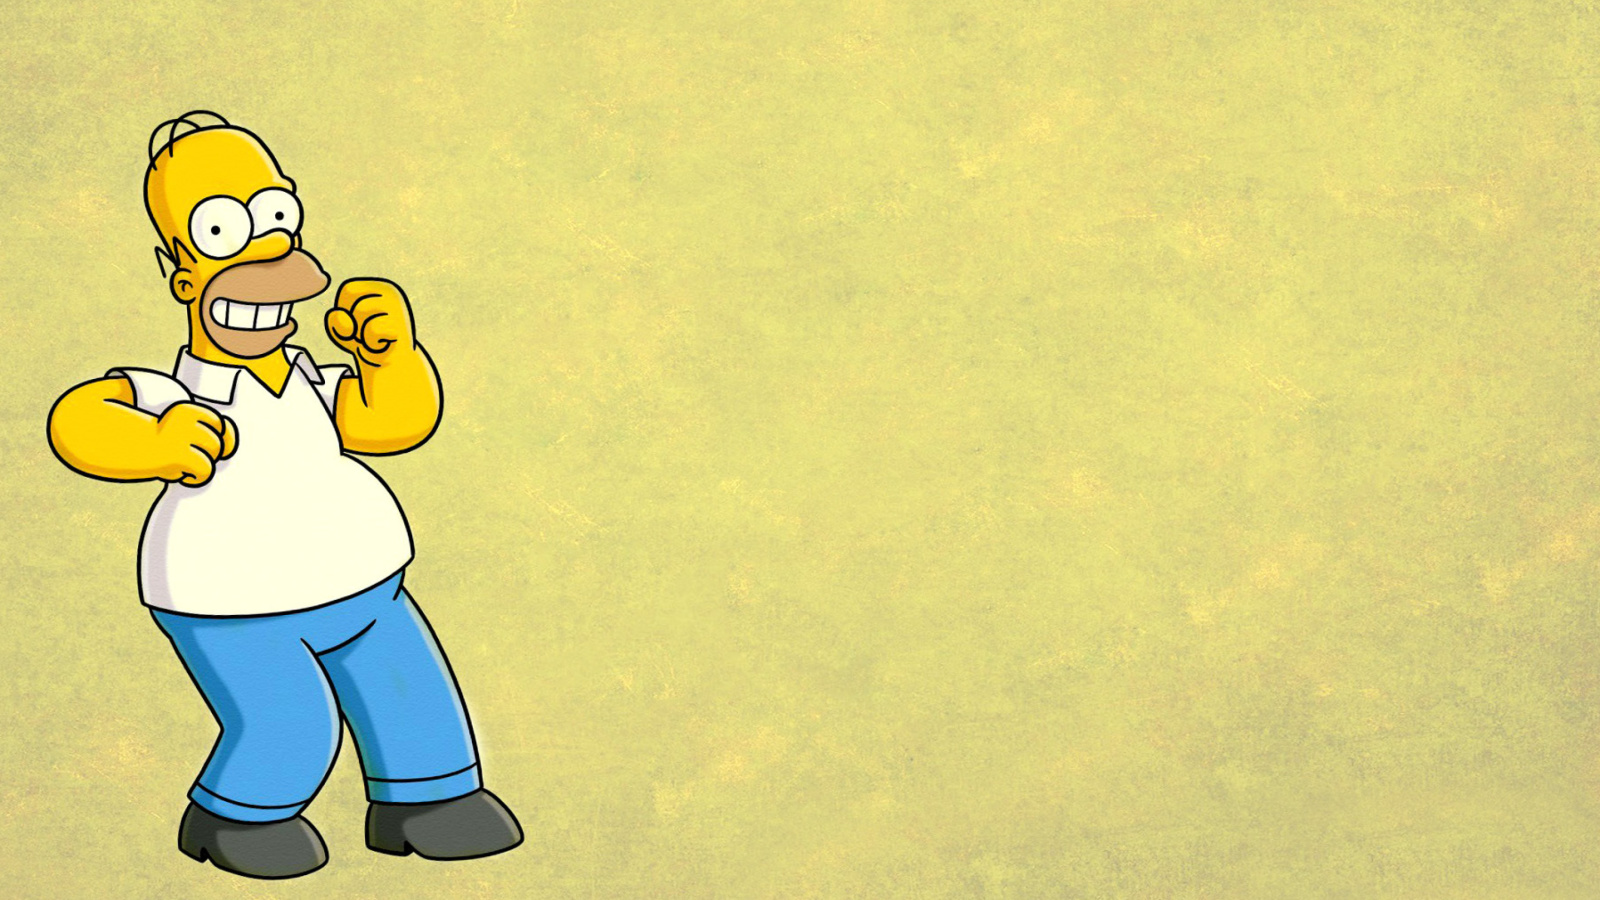 Homer simpson gif wallpaper for 1600x900 - Simpsons info ...